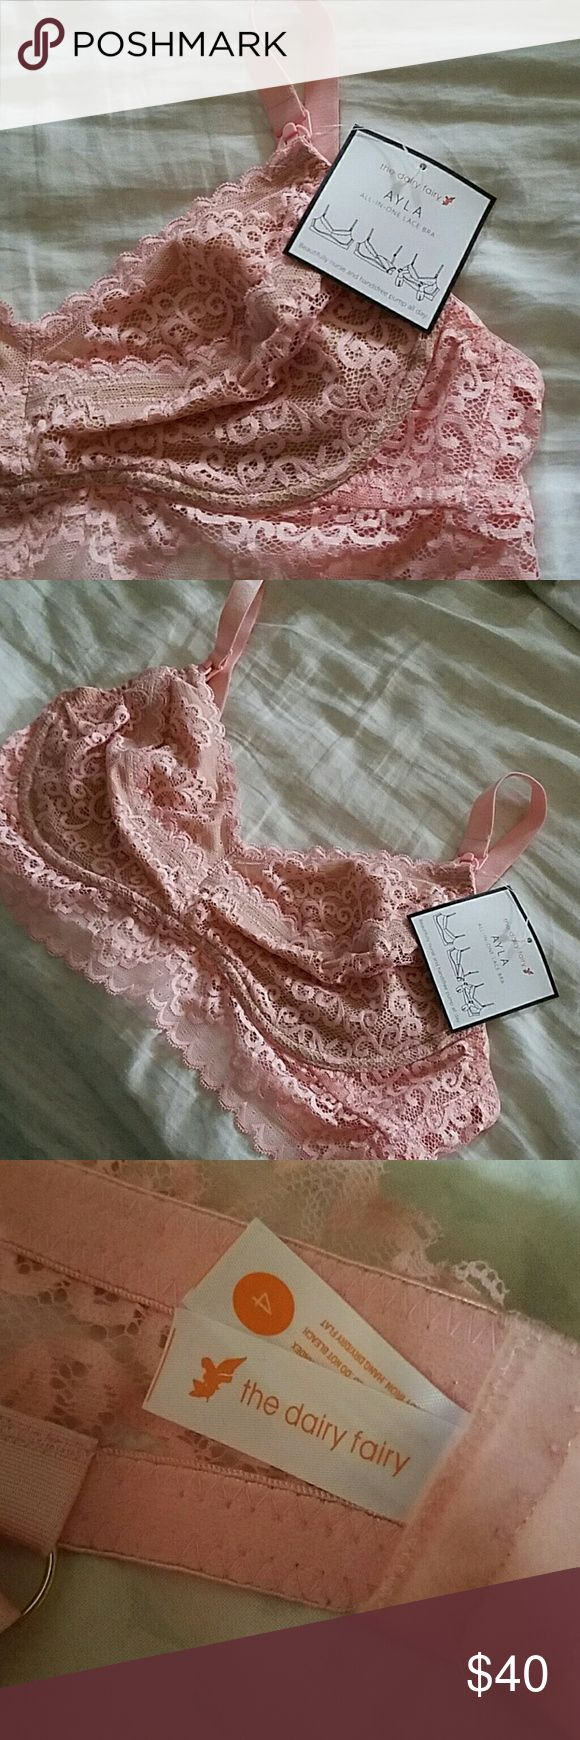 NWT Dairy Fairy Ayla Bra size 4 Brand new with tags ayla pink lace pumping/nursing bra from the dairy fairy. Size 4, they told me it fits about 36D/DD-38D/DD according to their size chart. The Dairy Fairy Intimates & Sleepwear